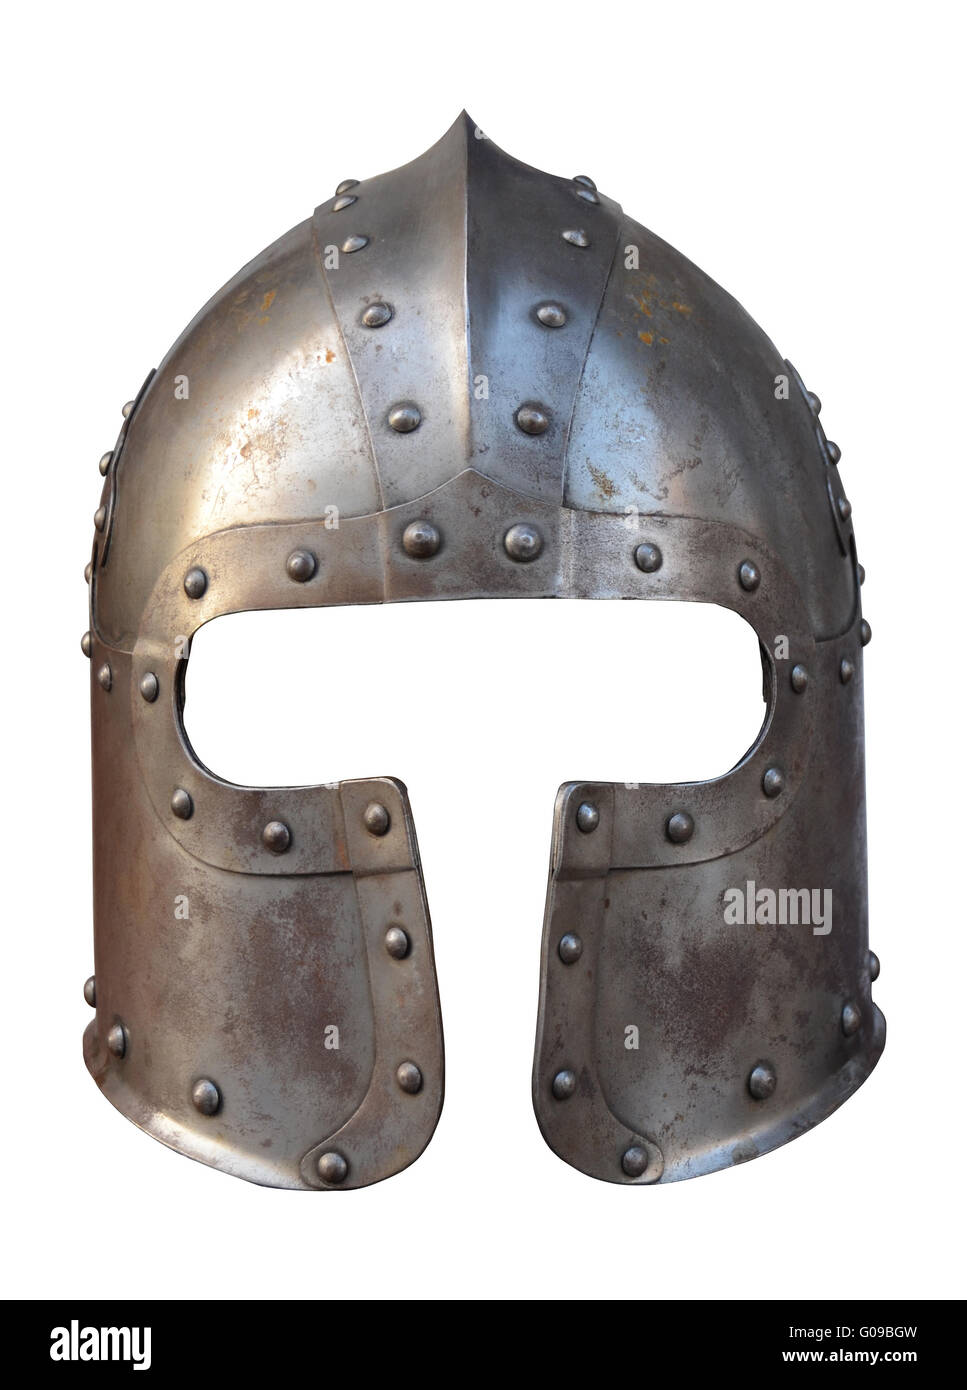 Isolation Of The Helmet Of A Medieval Suit Of Armour On A